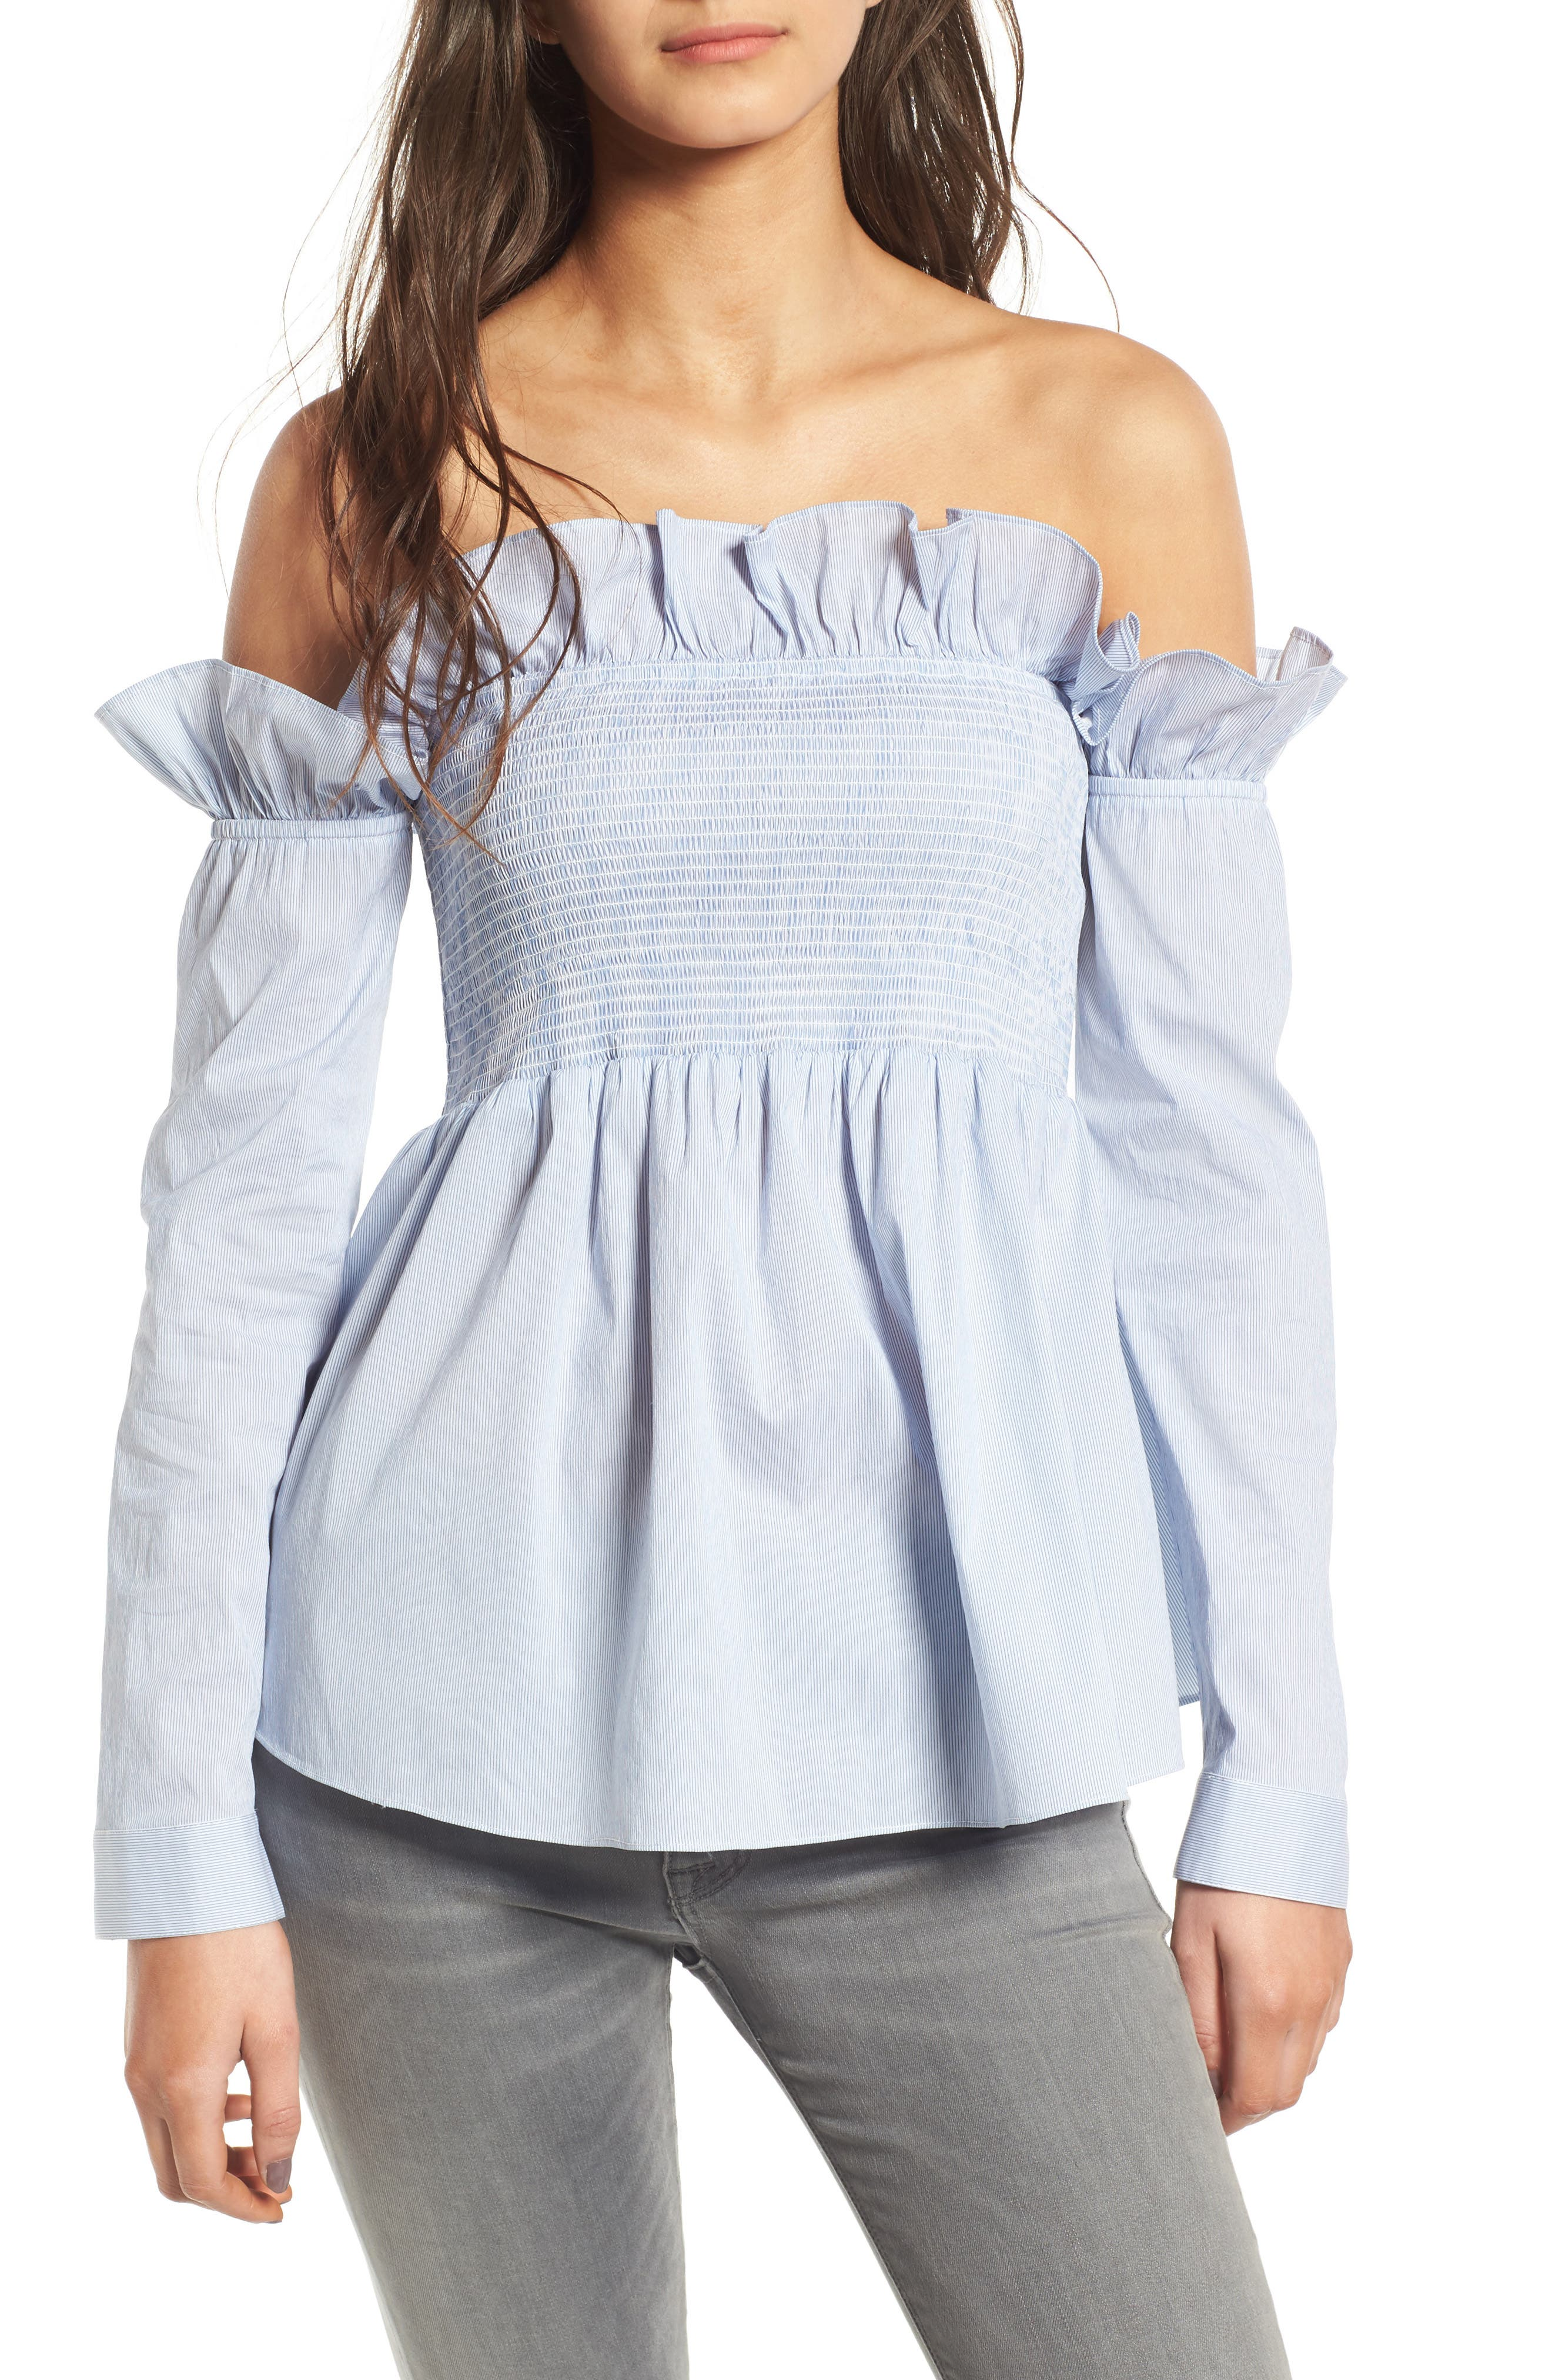 Main Image - Chelsea28 Ruffle Smocked Off the Shoulder Top